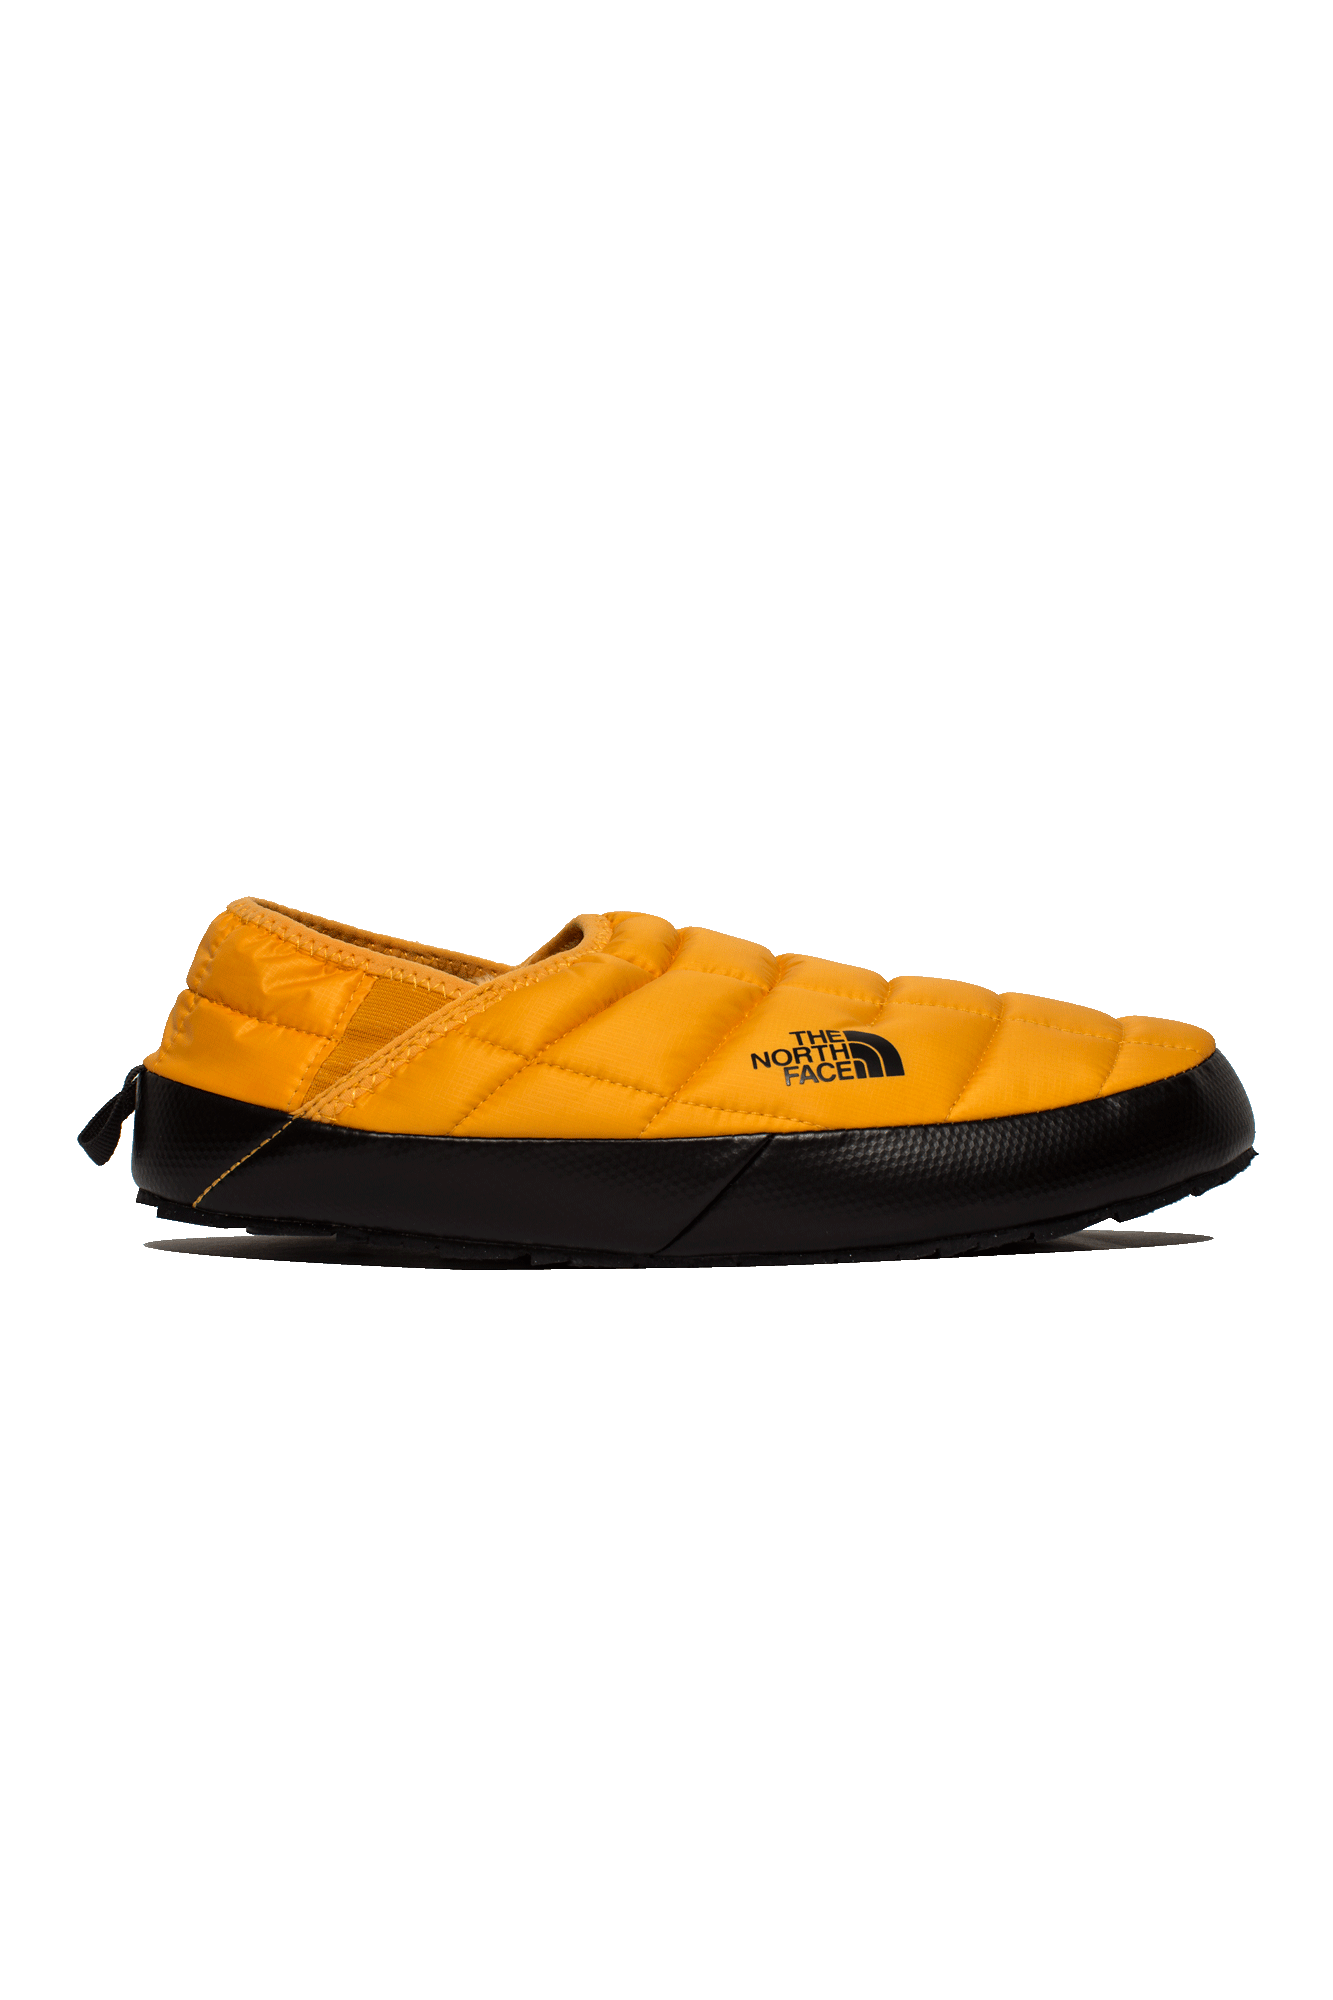 The North Face Sandals & Slides Thermoball Traction Mule V Yellow NF0A3UZN#000#ZU31#7 - One Block Down